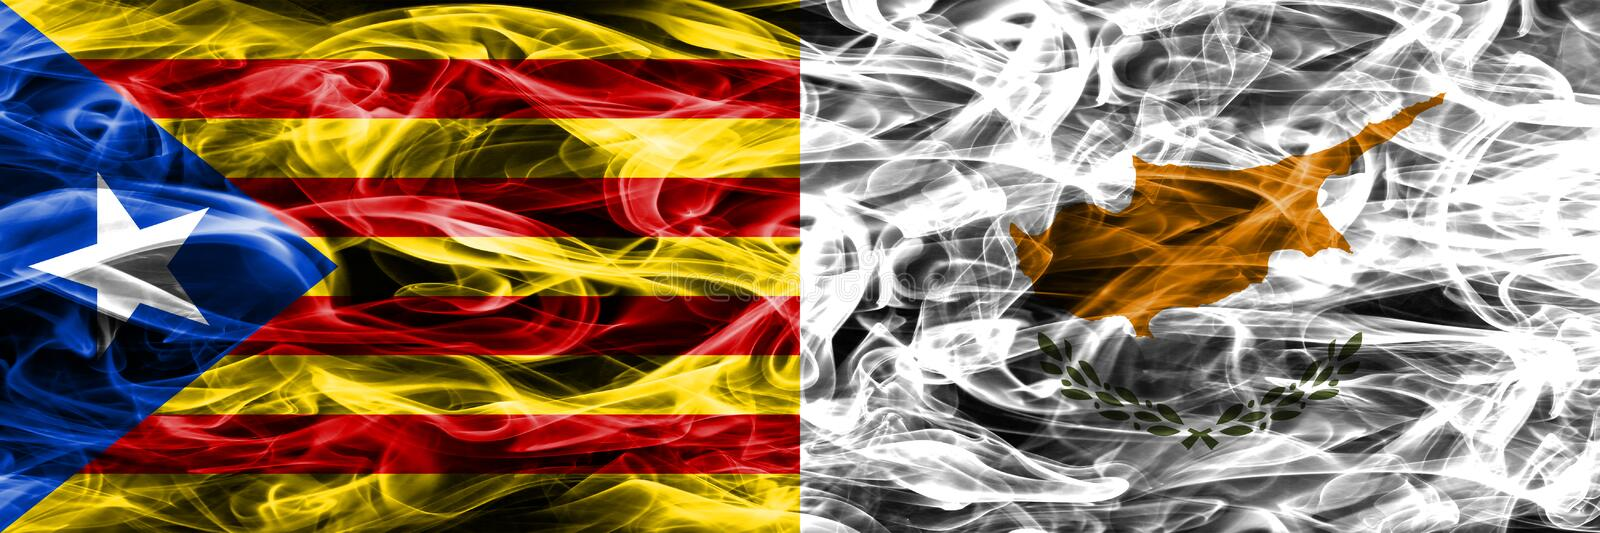 Catalonia vs Cyprus copy smoke flags placed side by side. Thick colored silky smoke flags of Catalan and Cyprus copy.  royalty free illustration